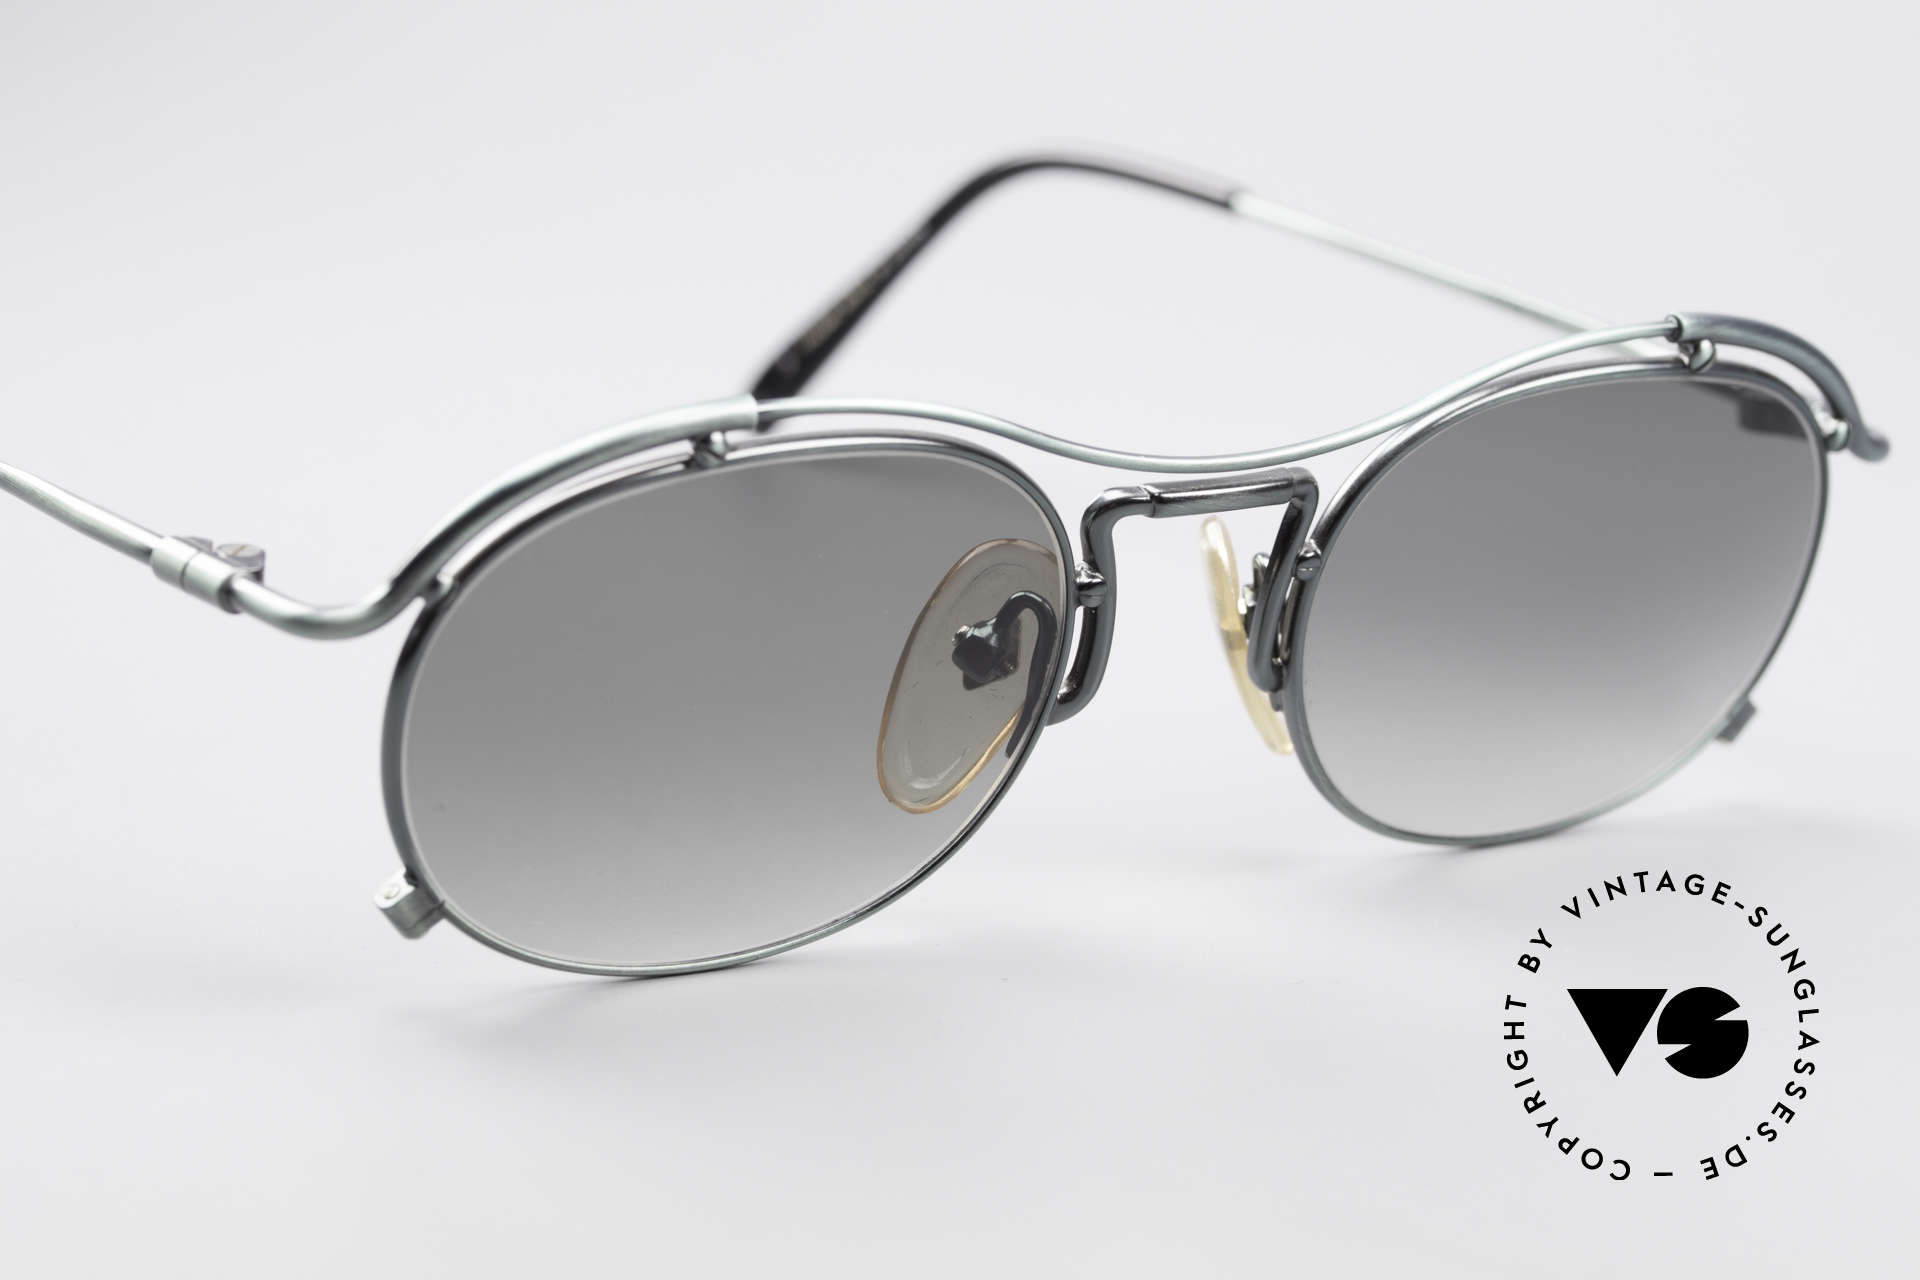 Jean Paul Gaultier 55-2170 Vintage 90's Sunglasses, unworn (like all our old 90's designer sunglasses), Made for Men and Women